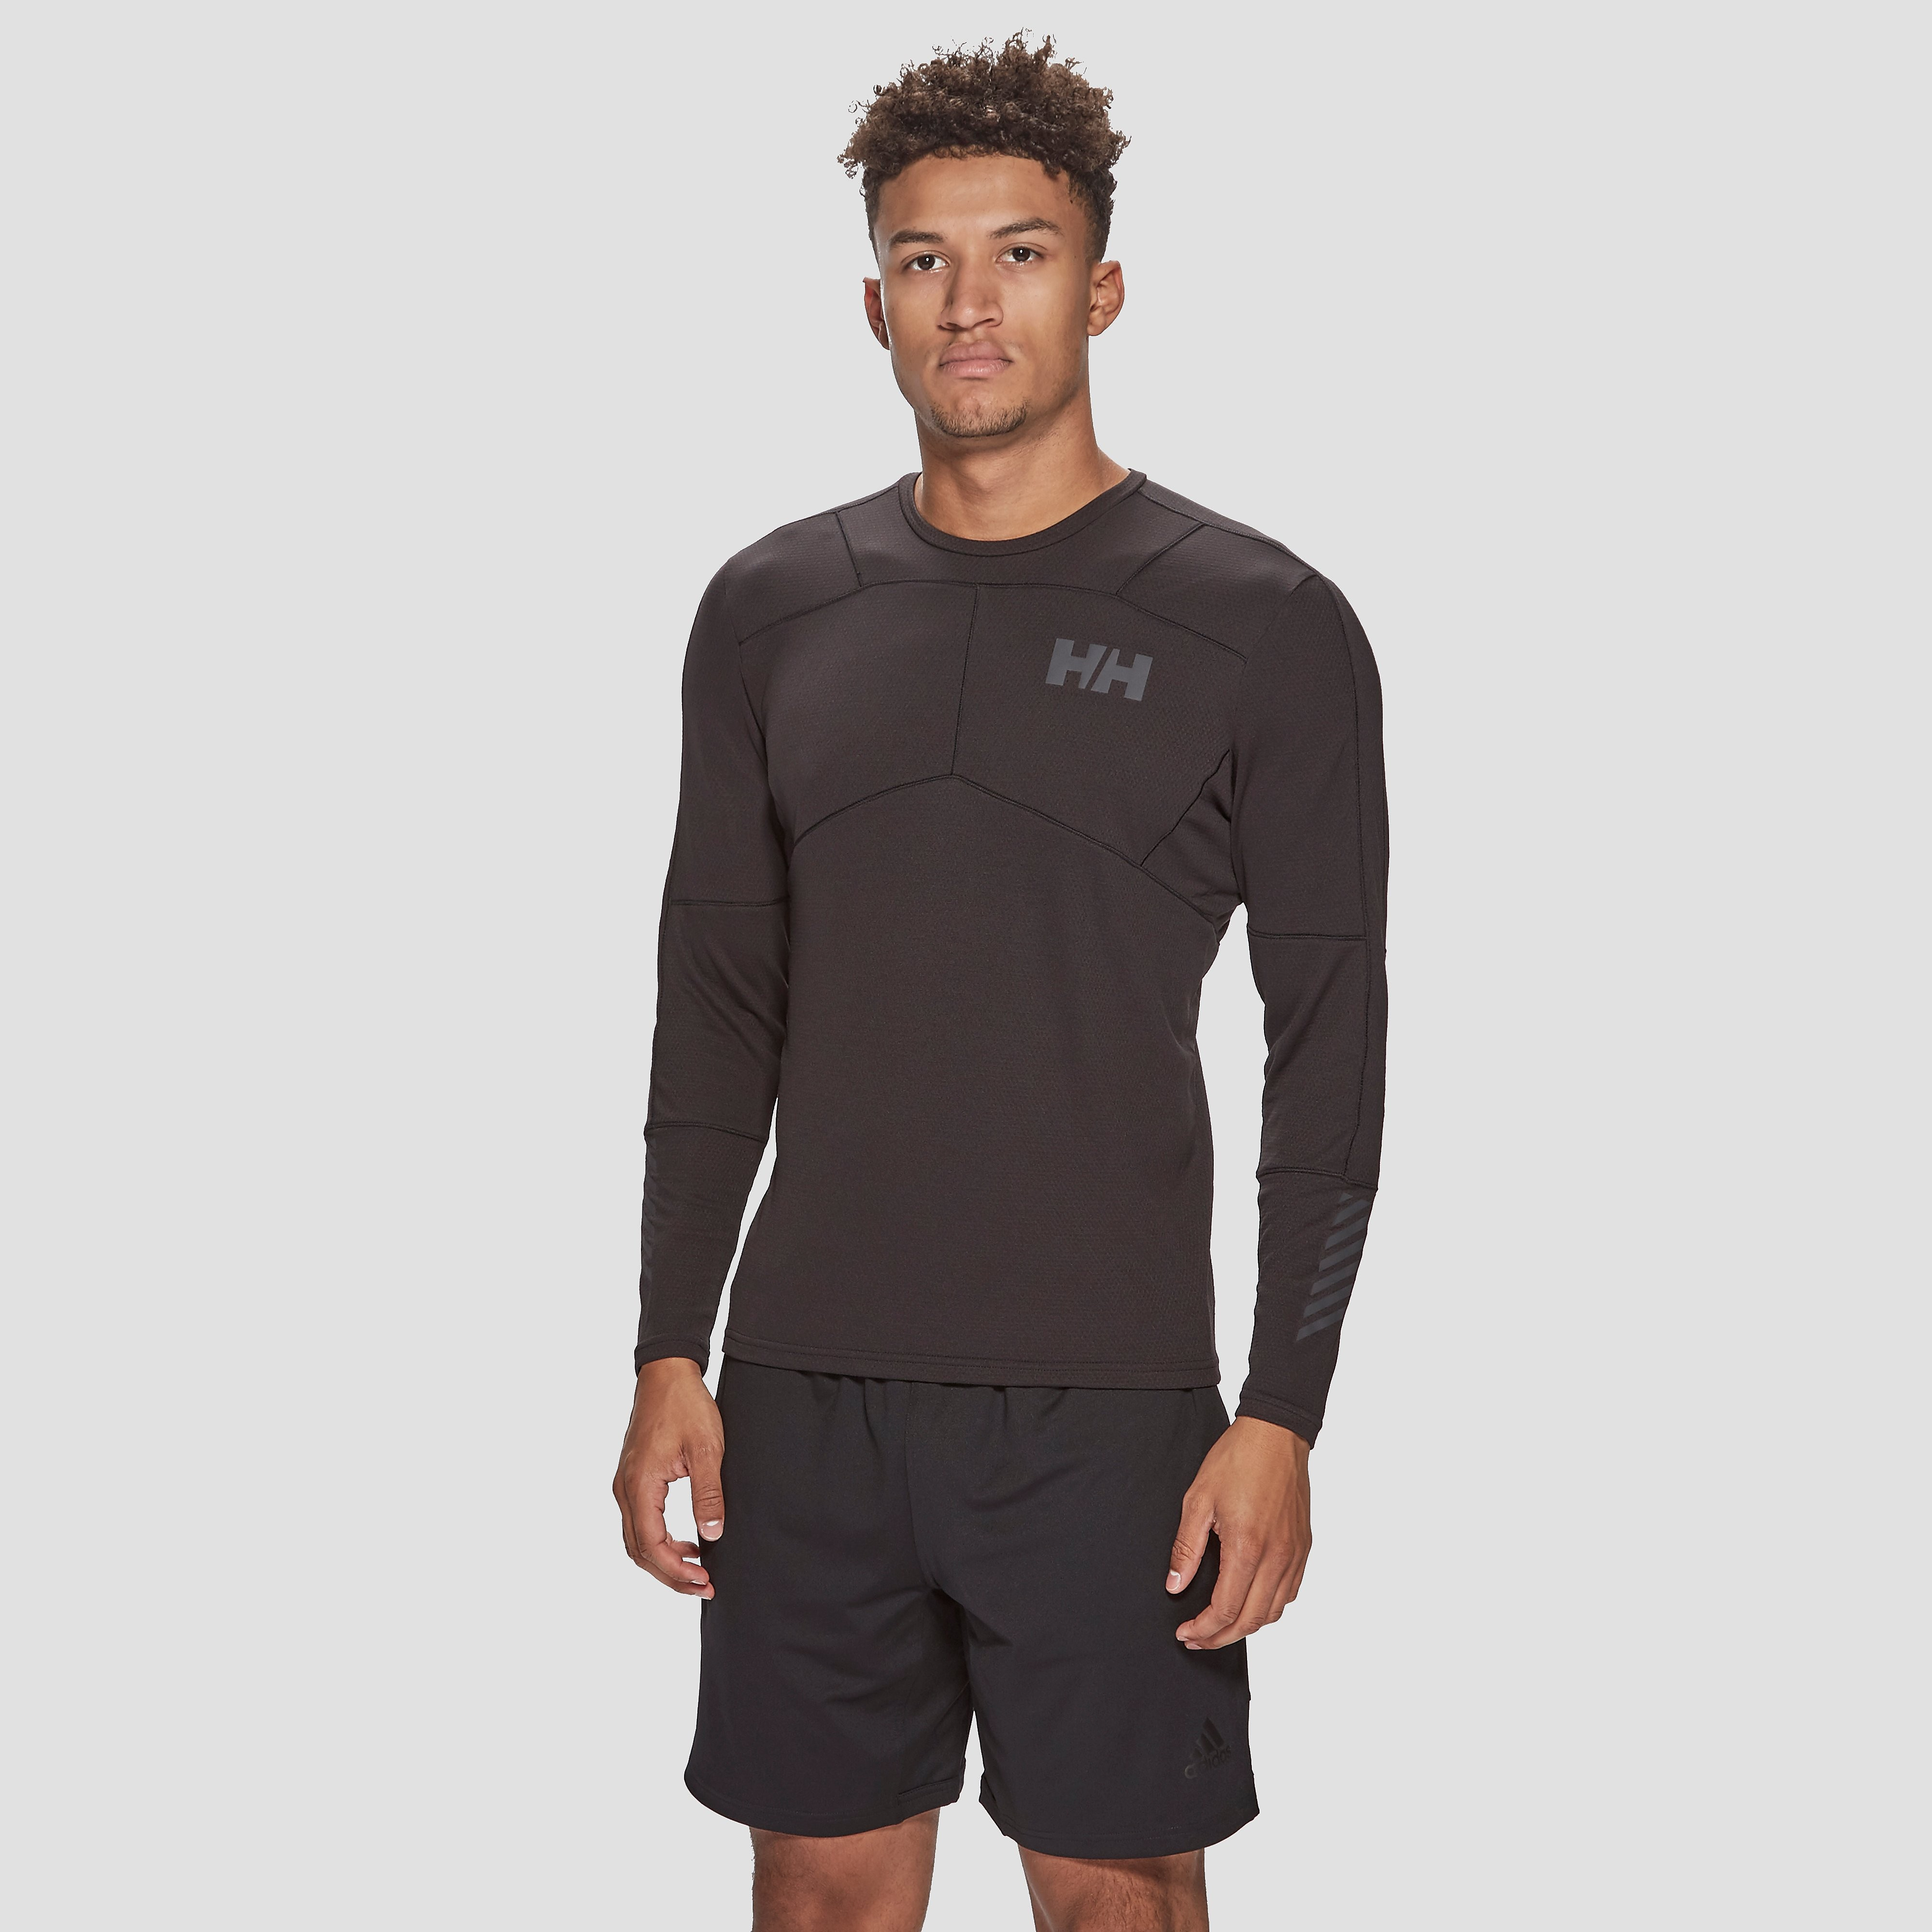 Helly Hansen Lifa Active Long Sleeve Crew Neck Men's Top